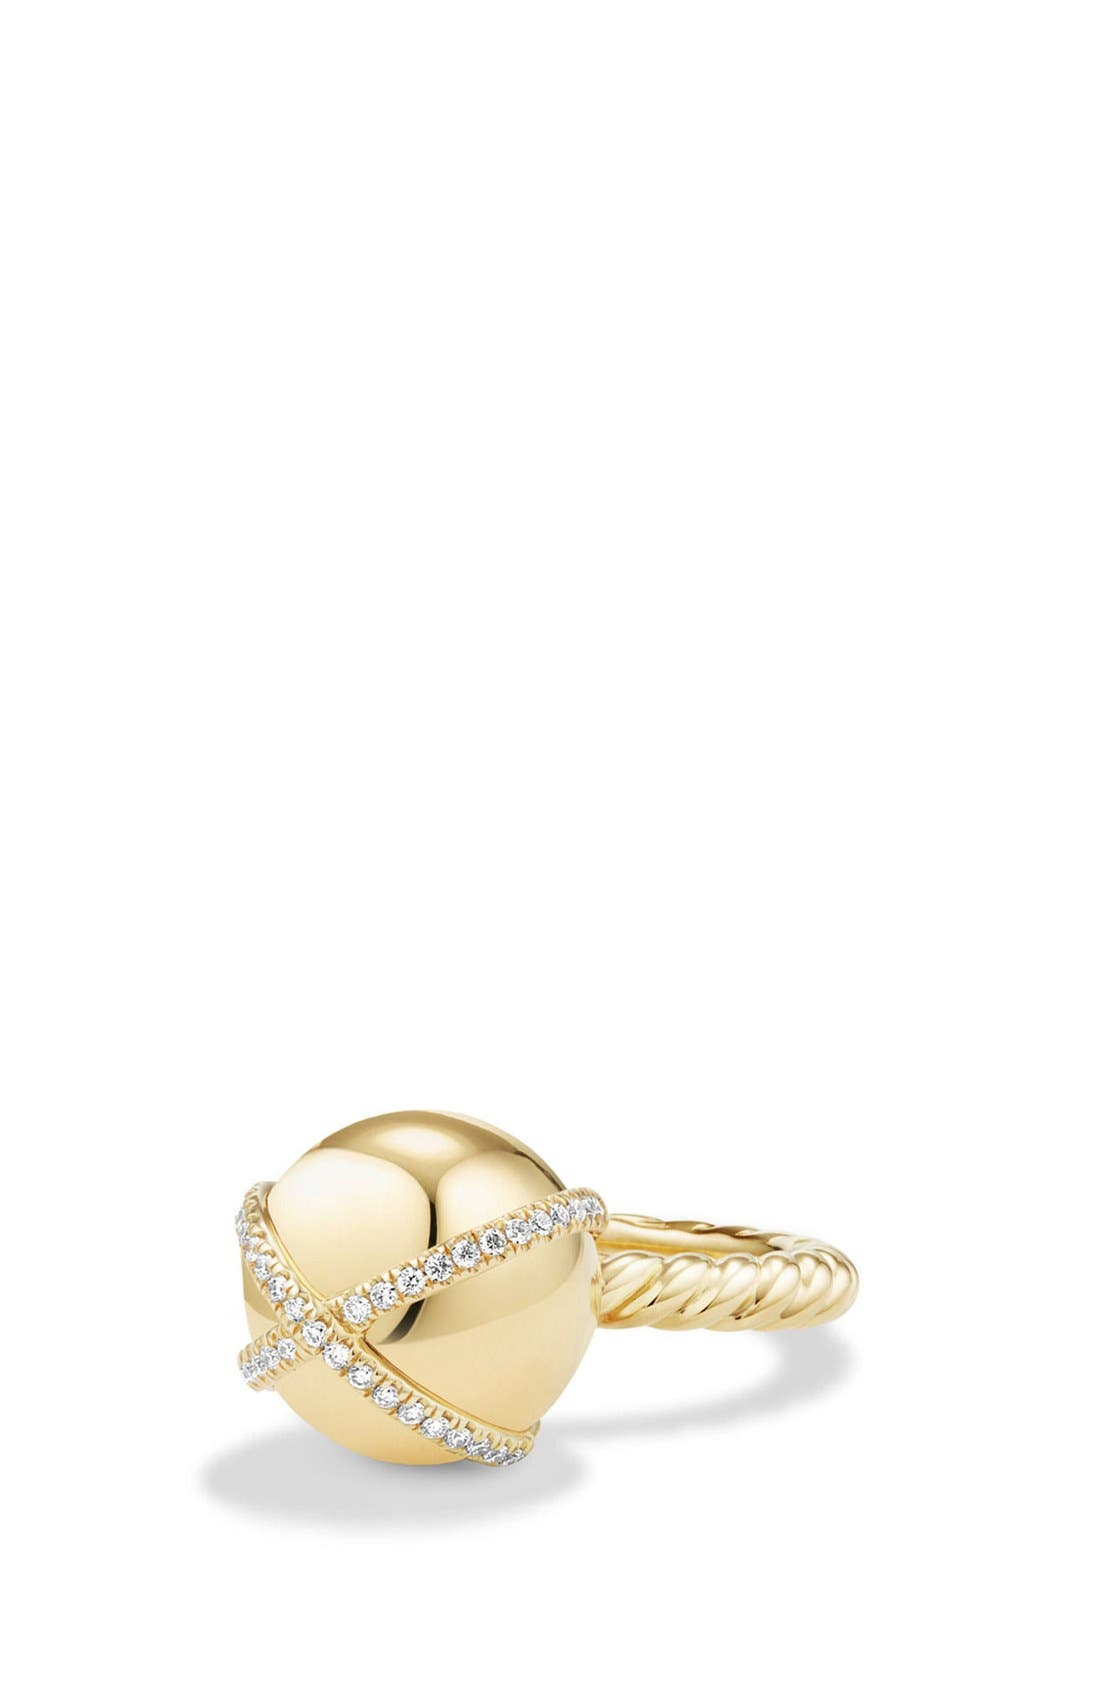 'Solari' Wrap Ring with Pavé Diamonds in 18k Gold,                             Main thumbnail 1, color,                             Yellow Gold